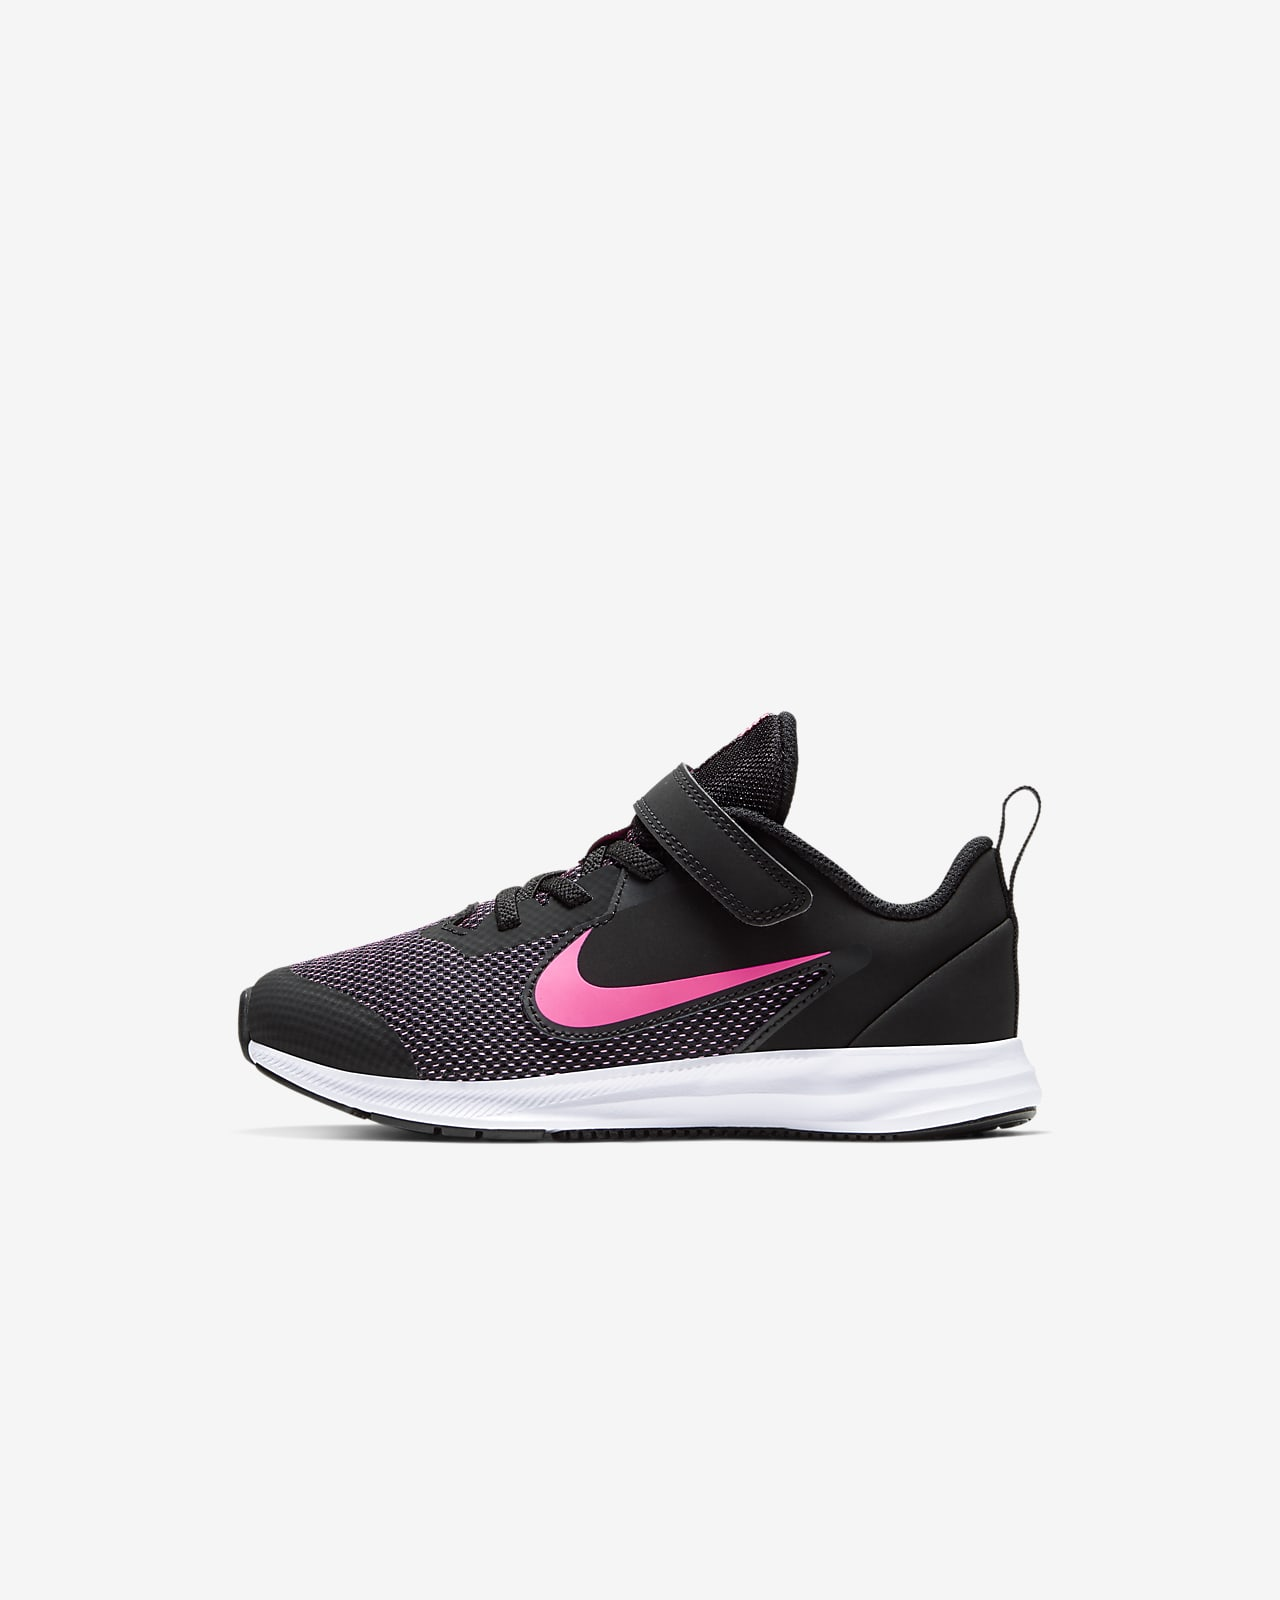 Nike Downshifter 9 Younger Kids' Shoe